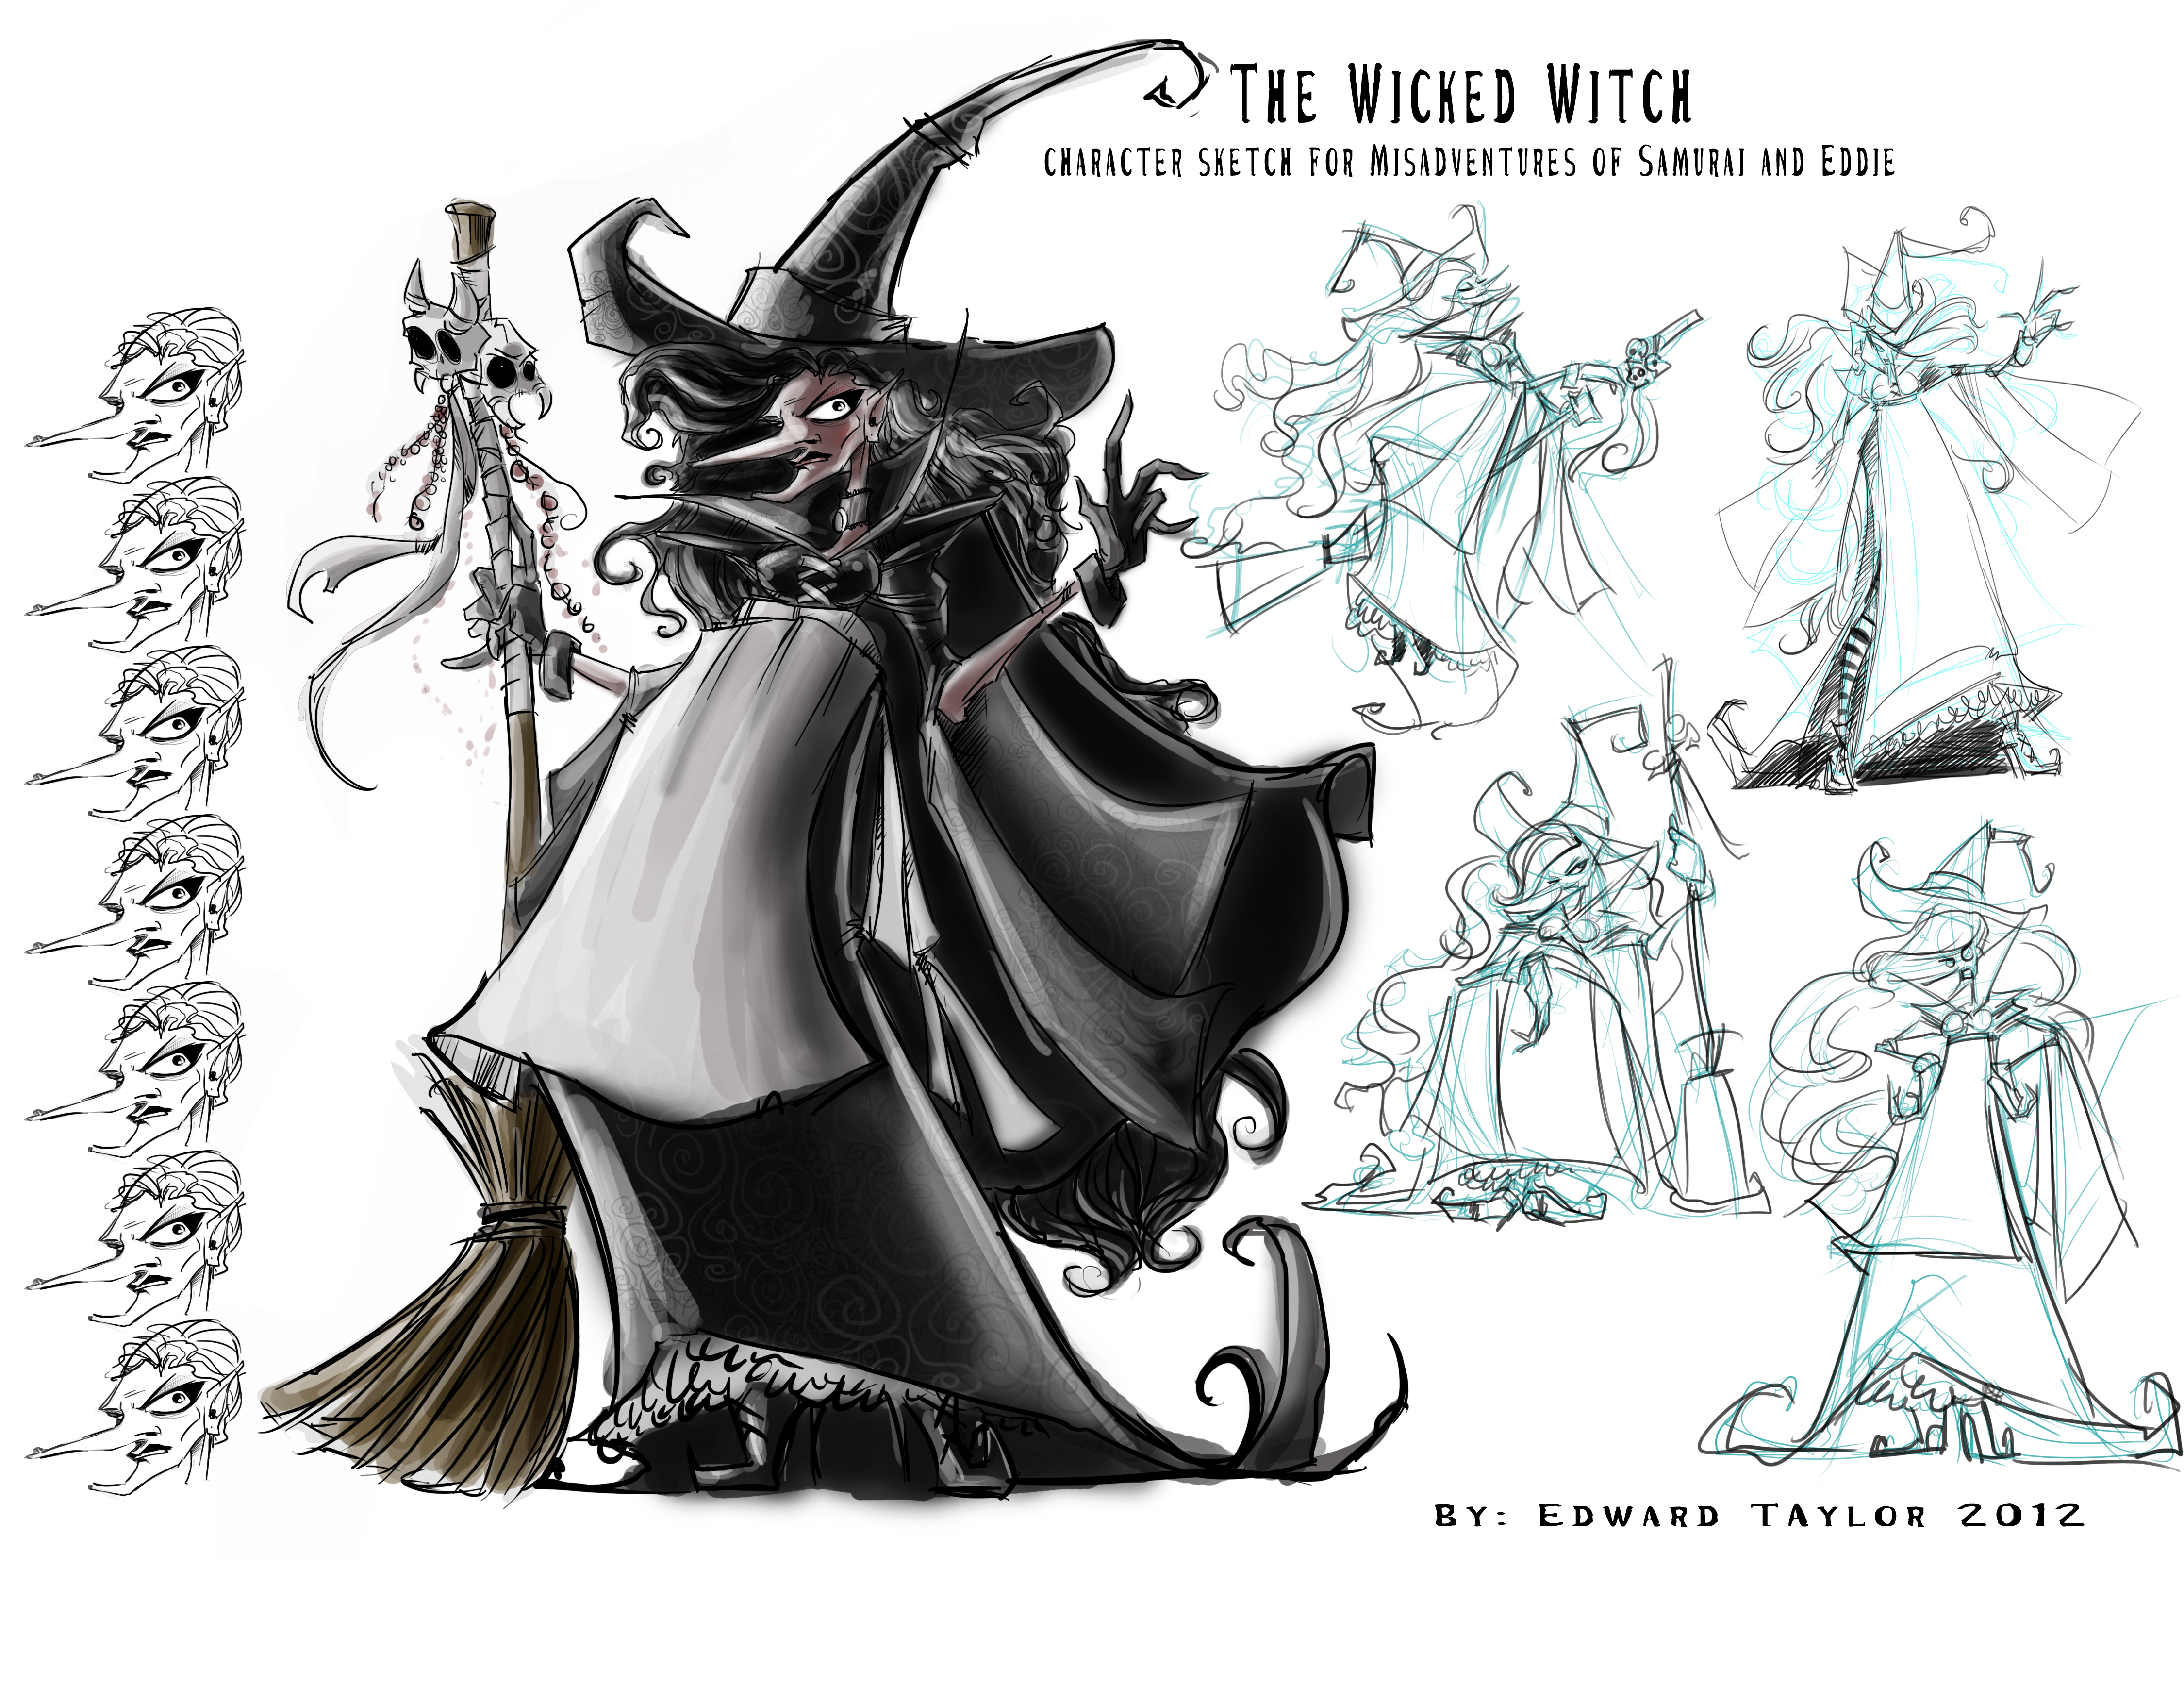 She S Quite The Wicked Witch Edwardian Taylor